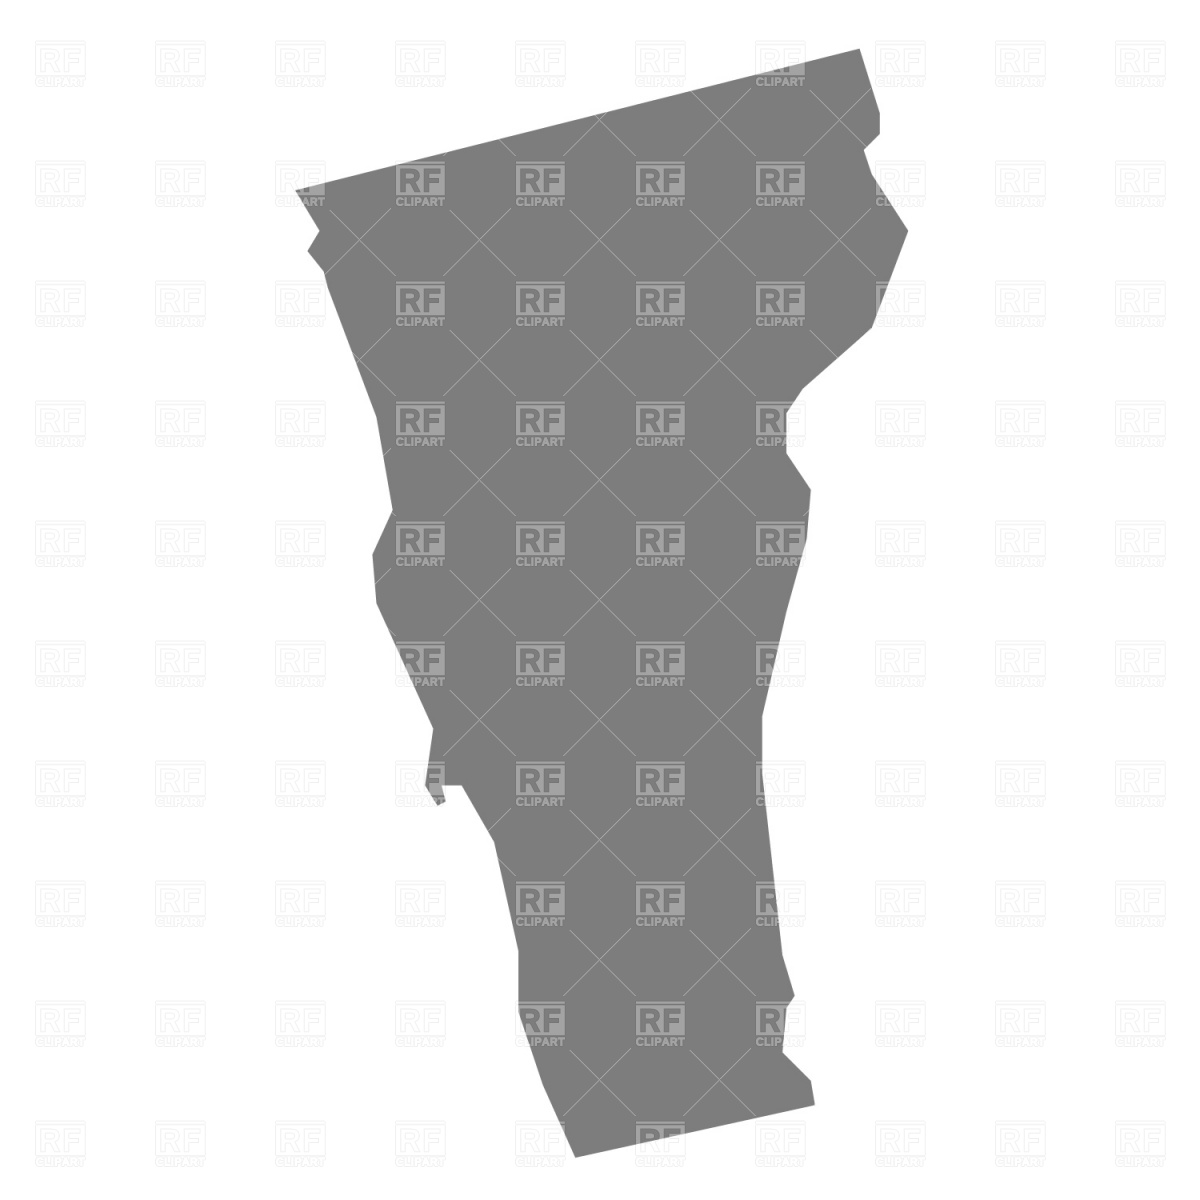 1200x1200 Vermont State Map Vector Image Vector Artwork Of Signs, Symbols